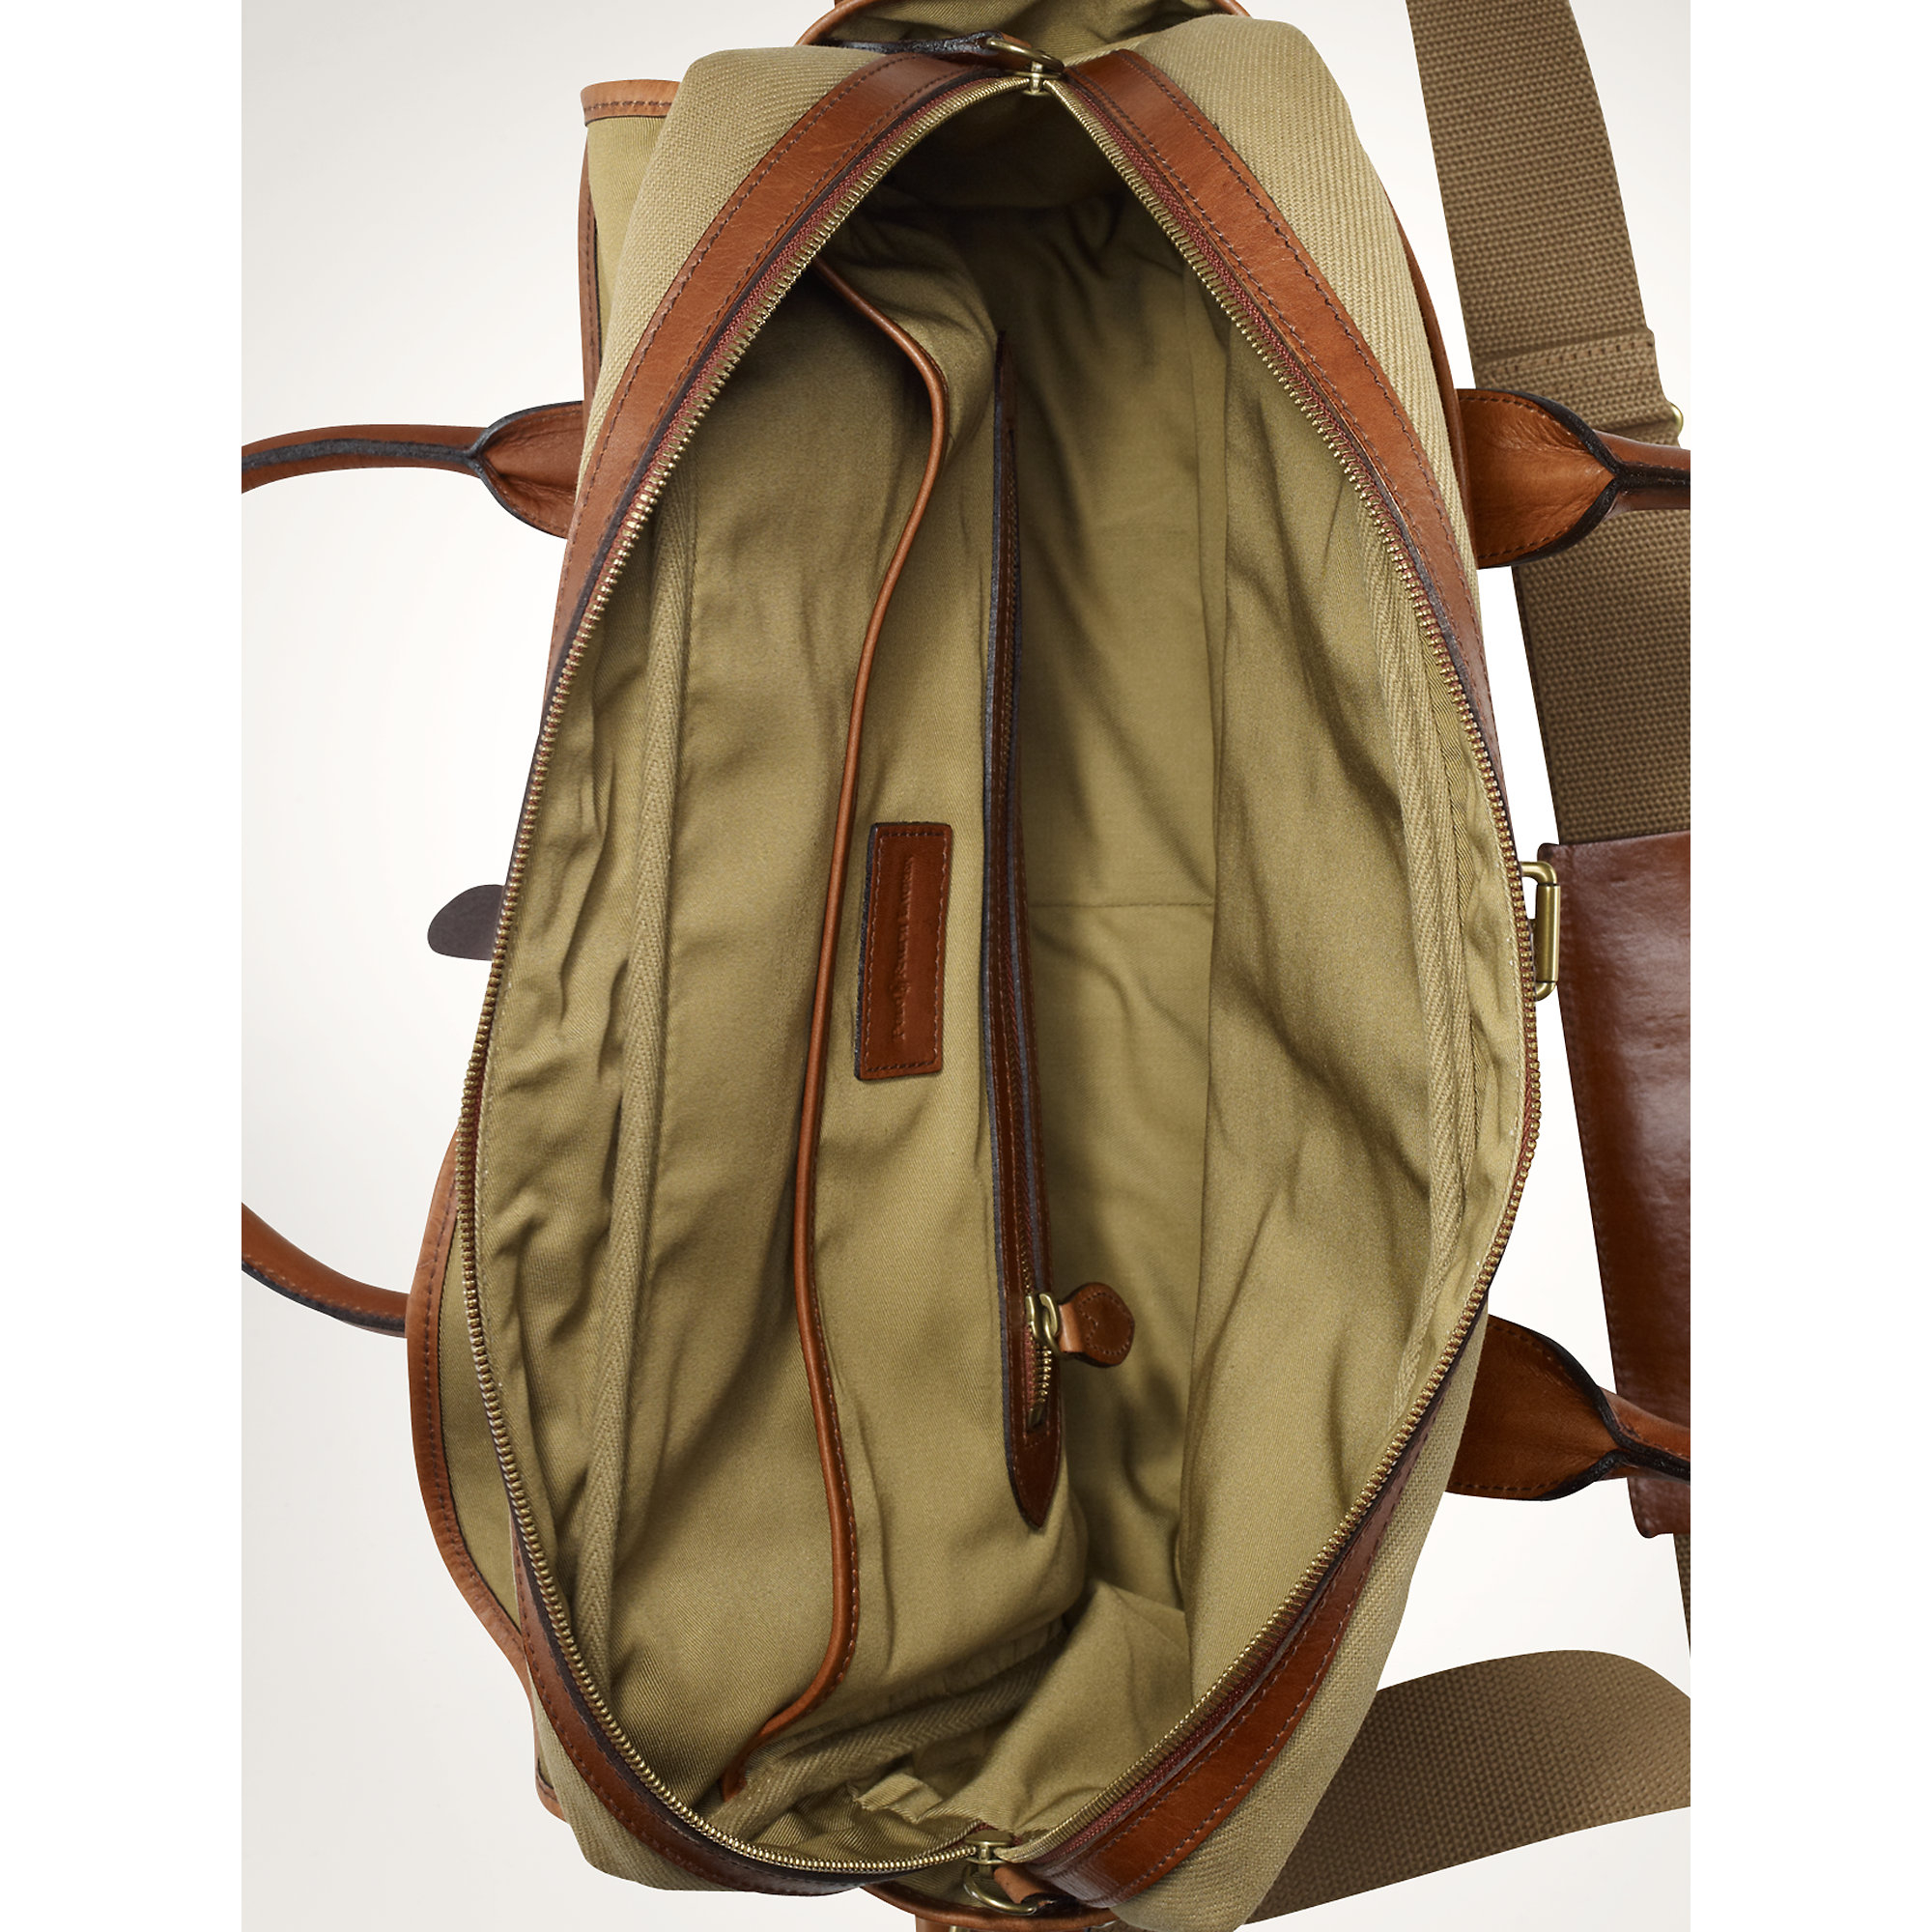 ... store lyst polo ralph lauren canvas leather messenger in natural for men  2dd71 ee432 d306057417252